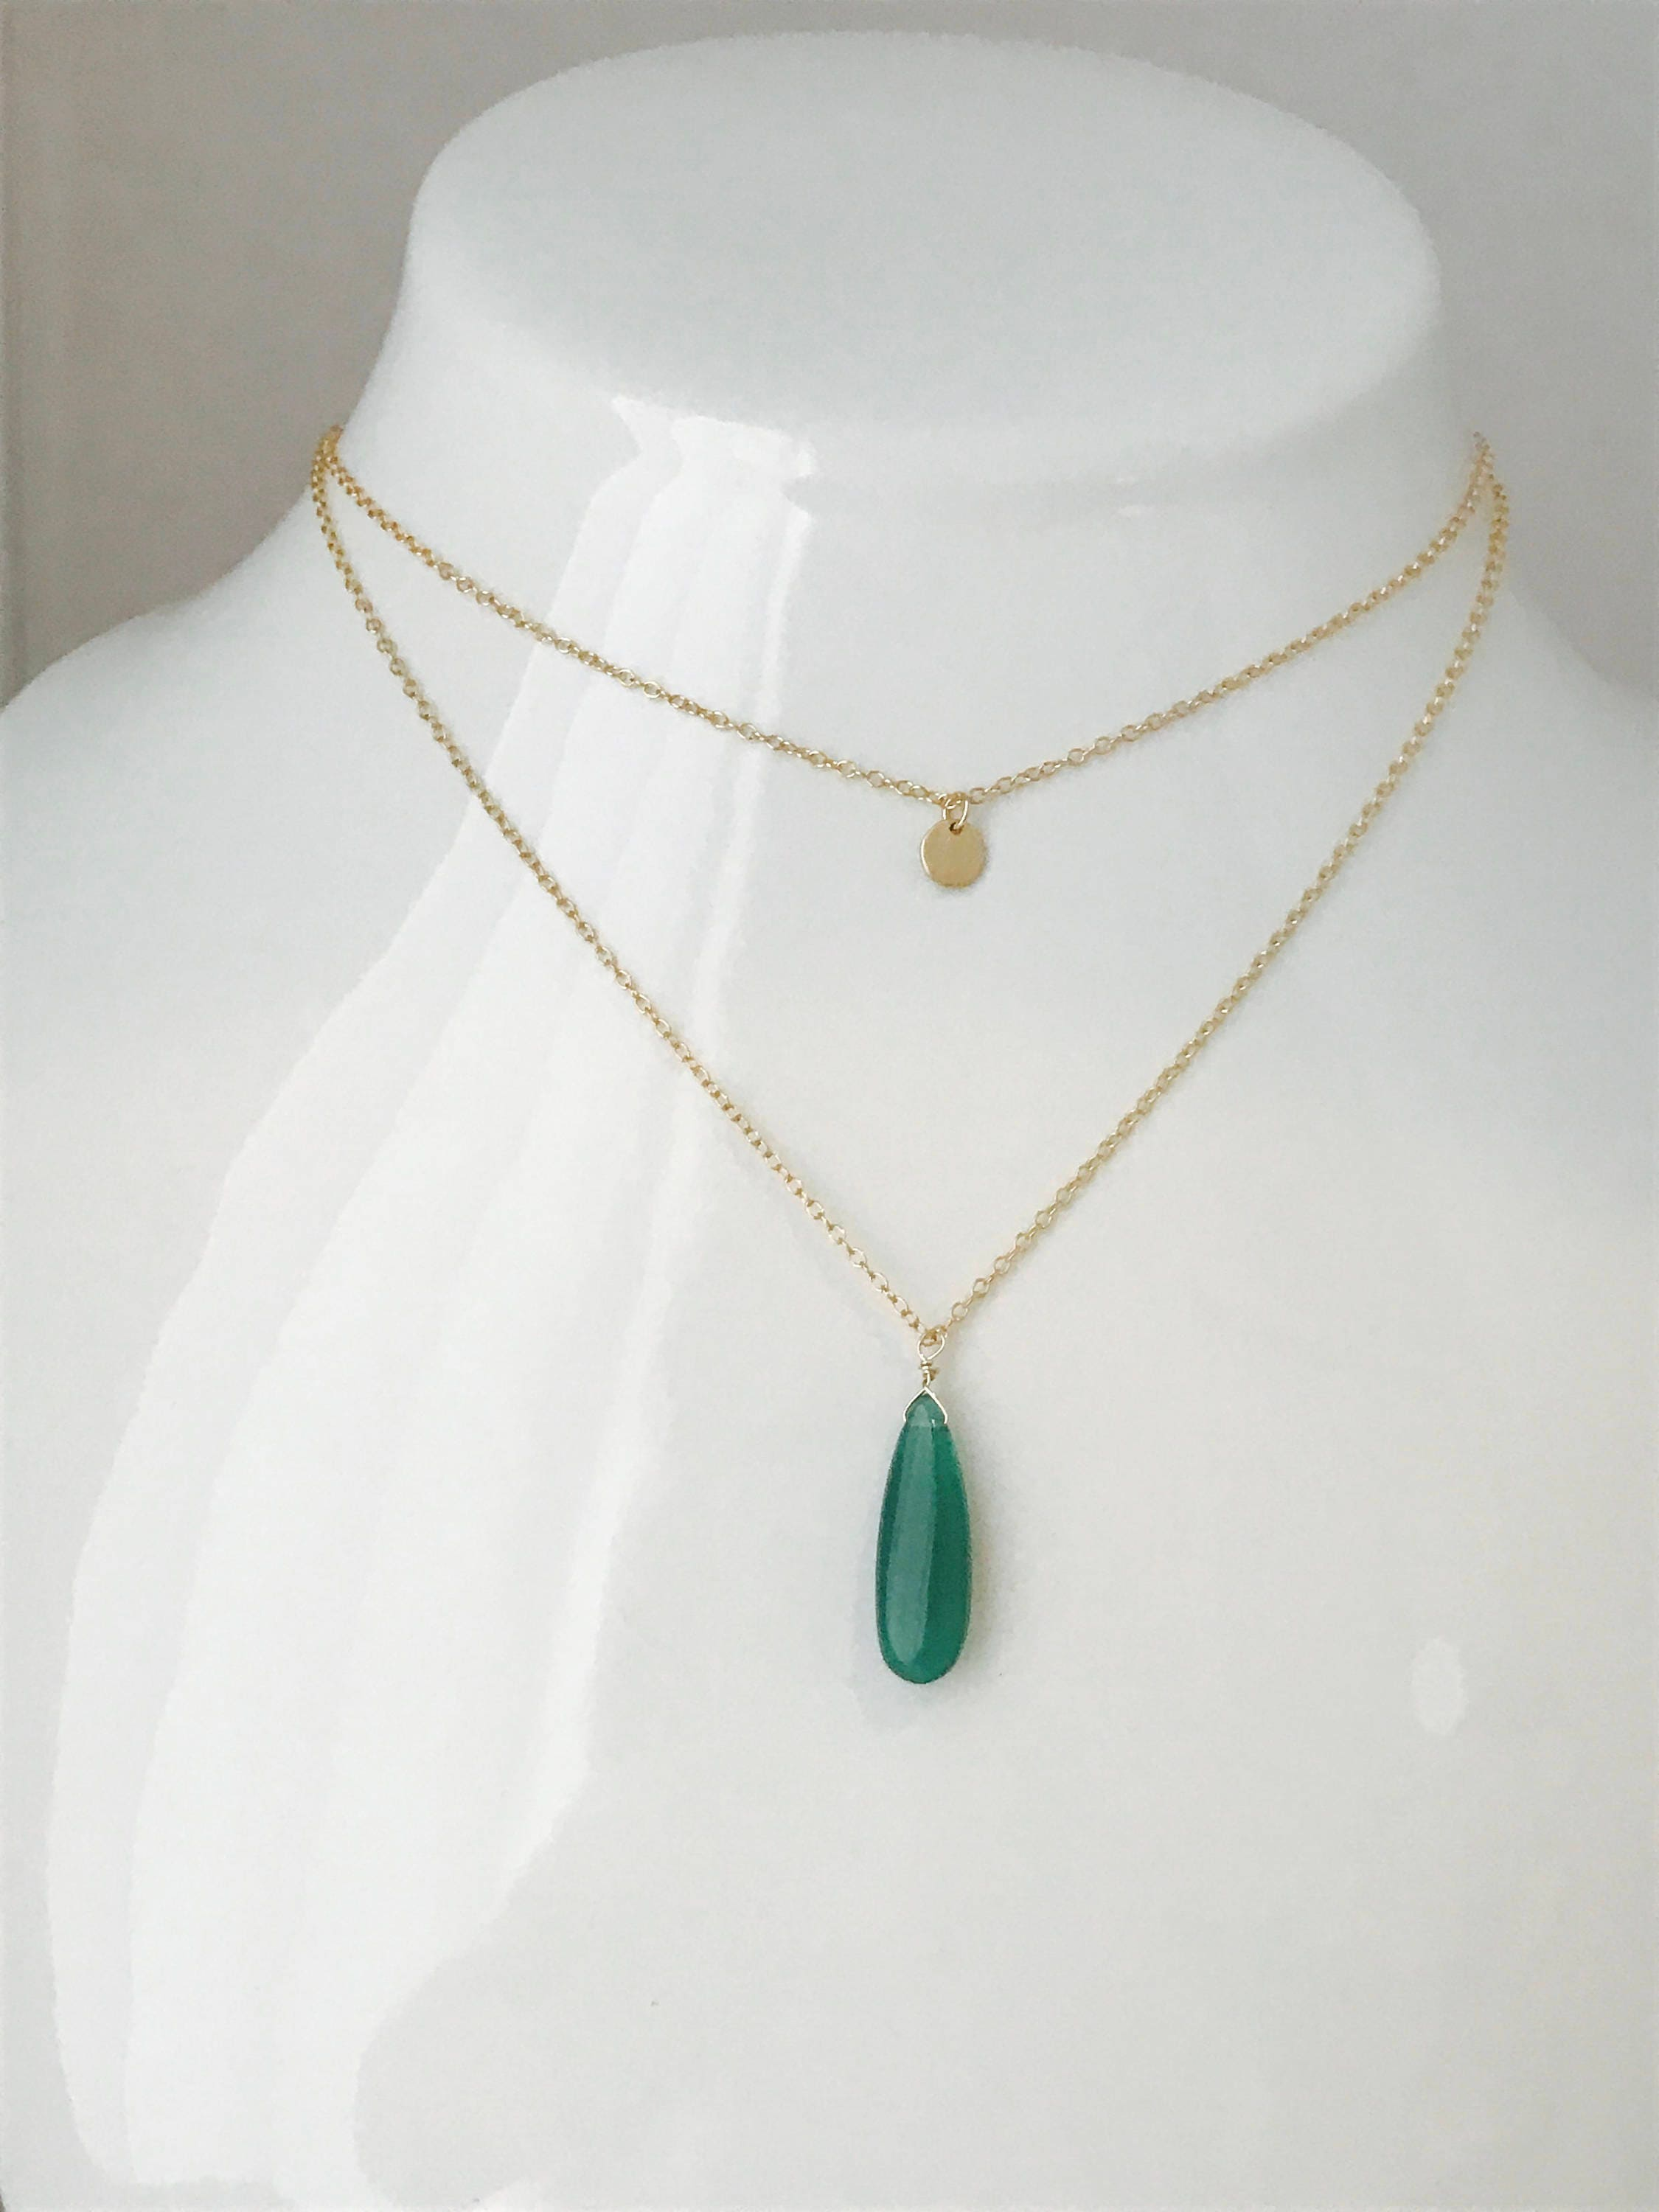 necklace shop stone yates options emerson designs onyx sissy green color